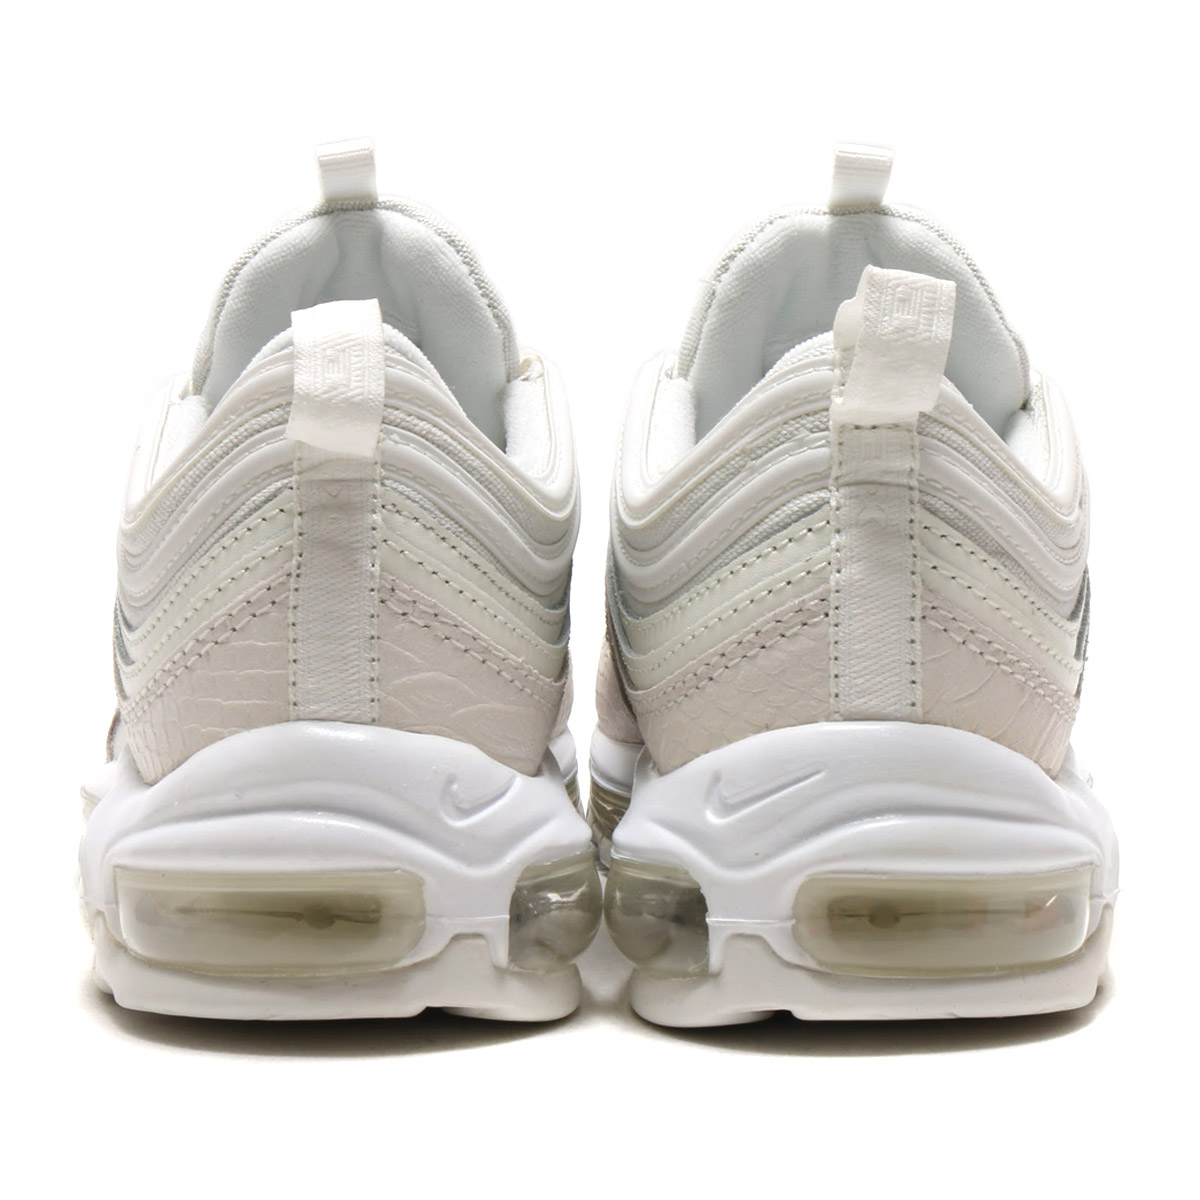 NIKE AIR MAX 97 (나이키 에어 막스 97) (SUMMIT WHITE/SUMMIT WHITE) 17 FA-S